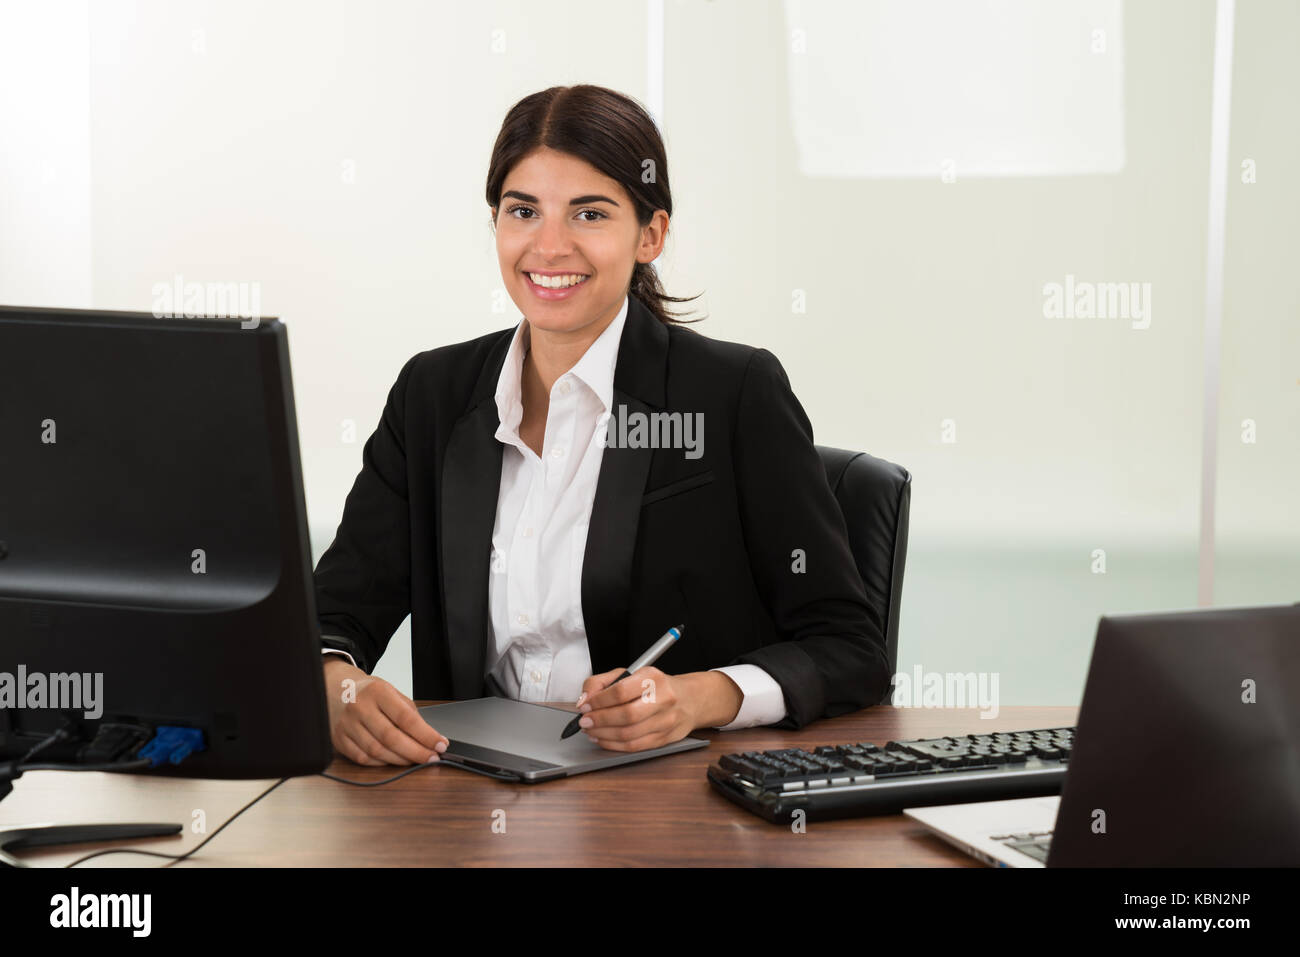 Young Happy Female Designer With Graphic Tablet Sitting At Desk - Stock Image